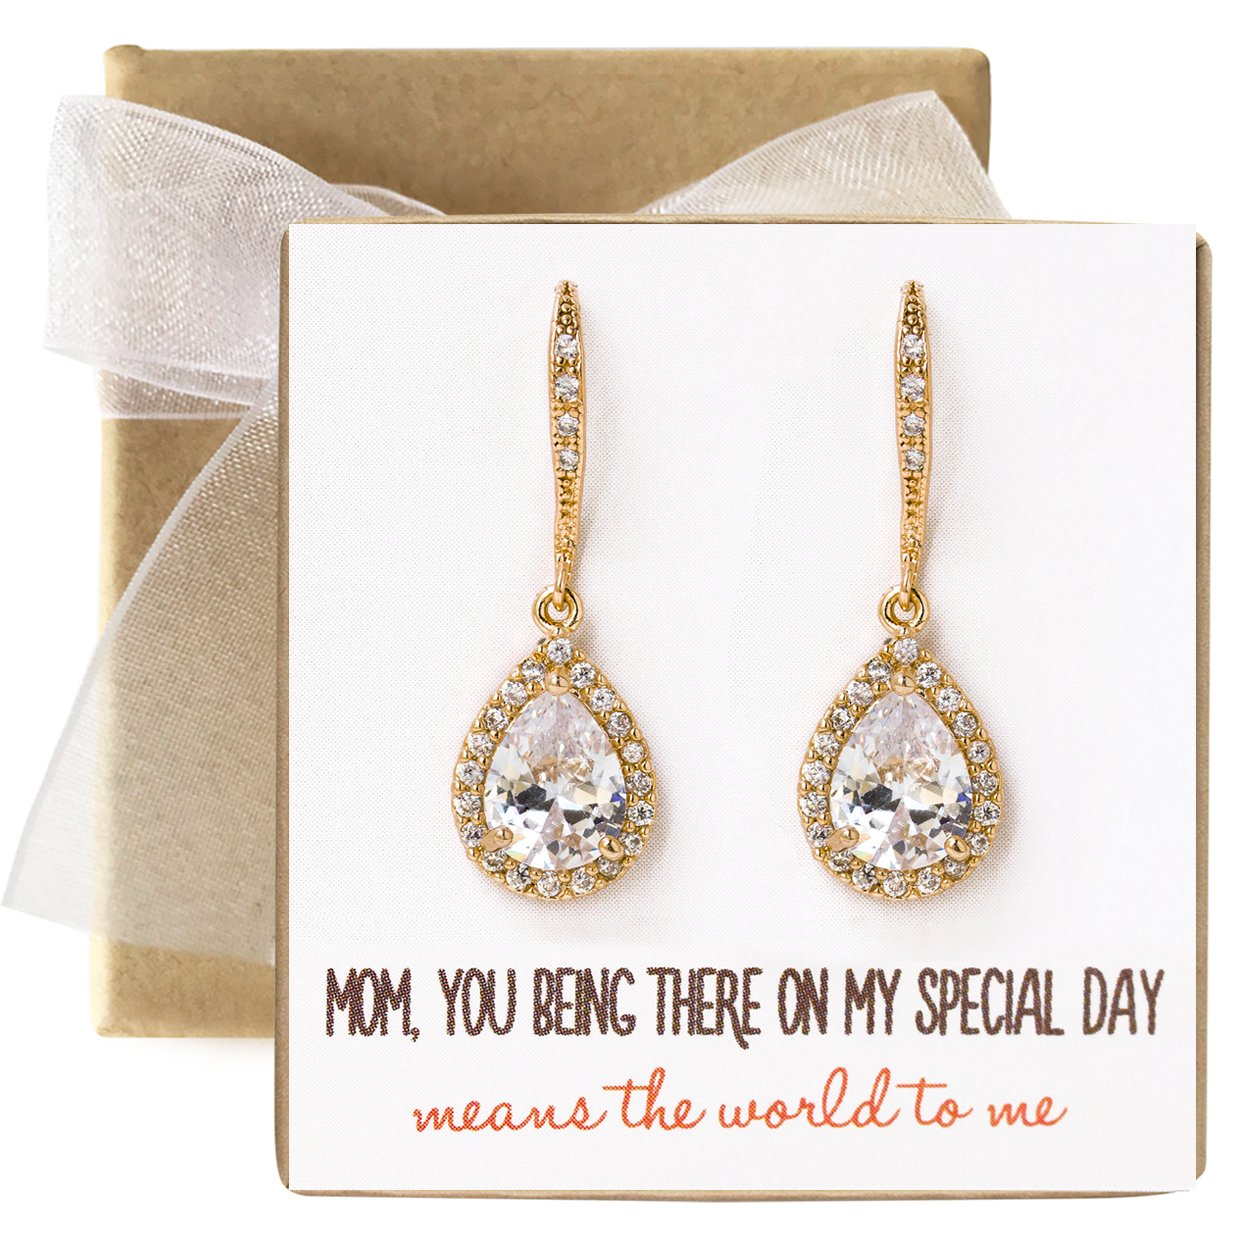 Mother of the bride Gift Drop Earrings or Jewelry set in Silver, Yellow Gold, Rose Gold